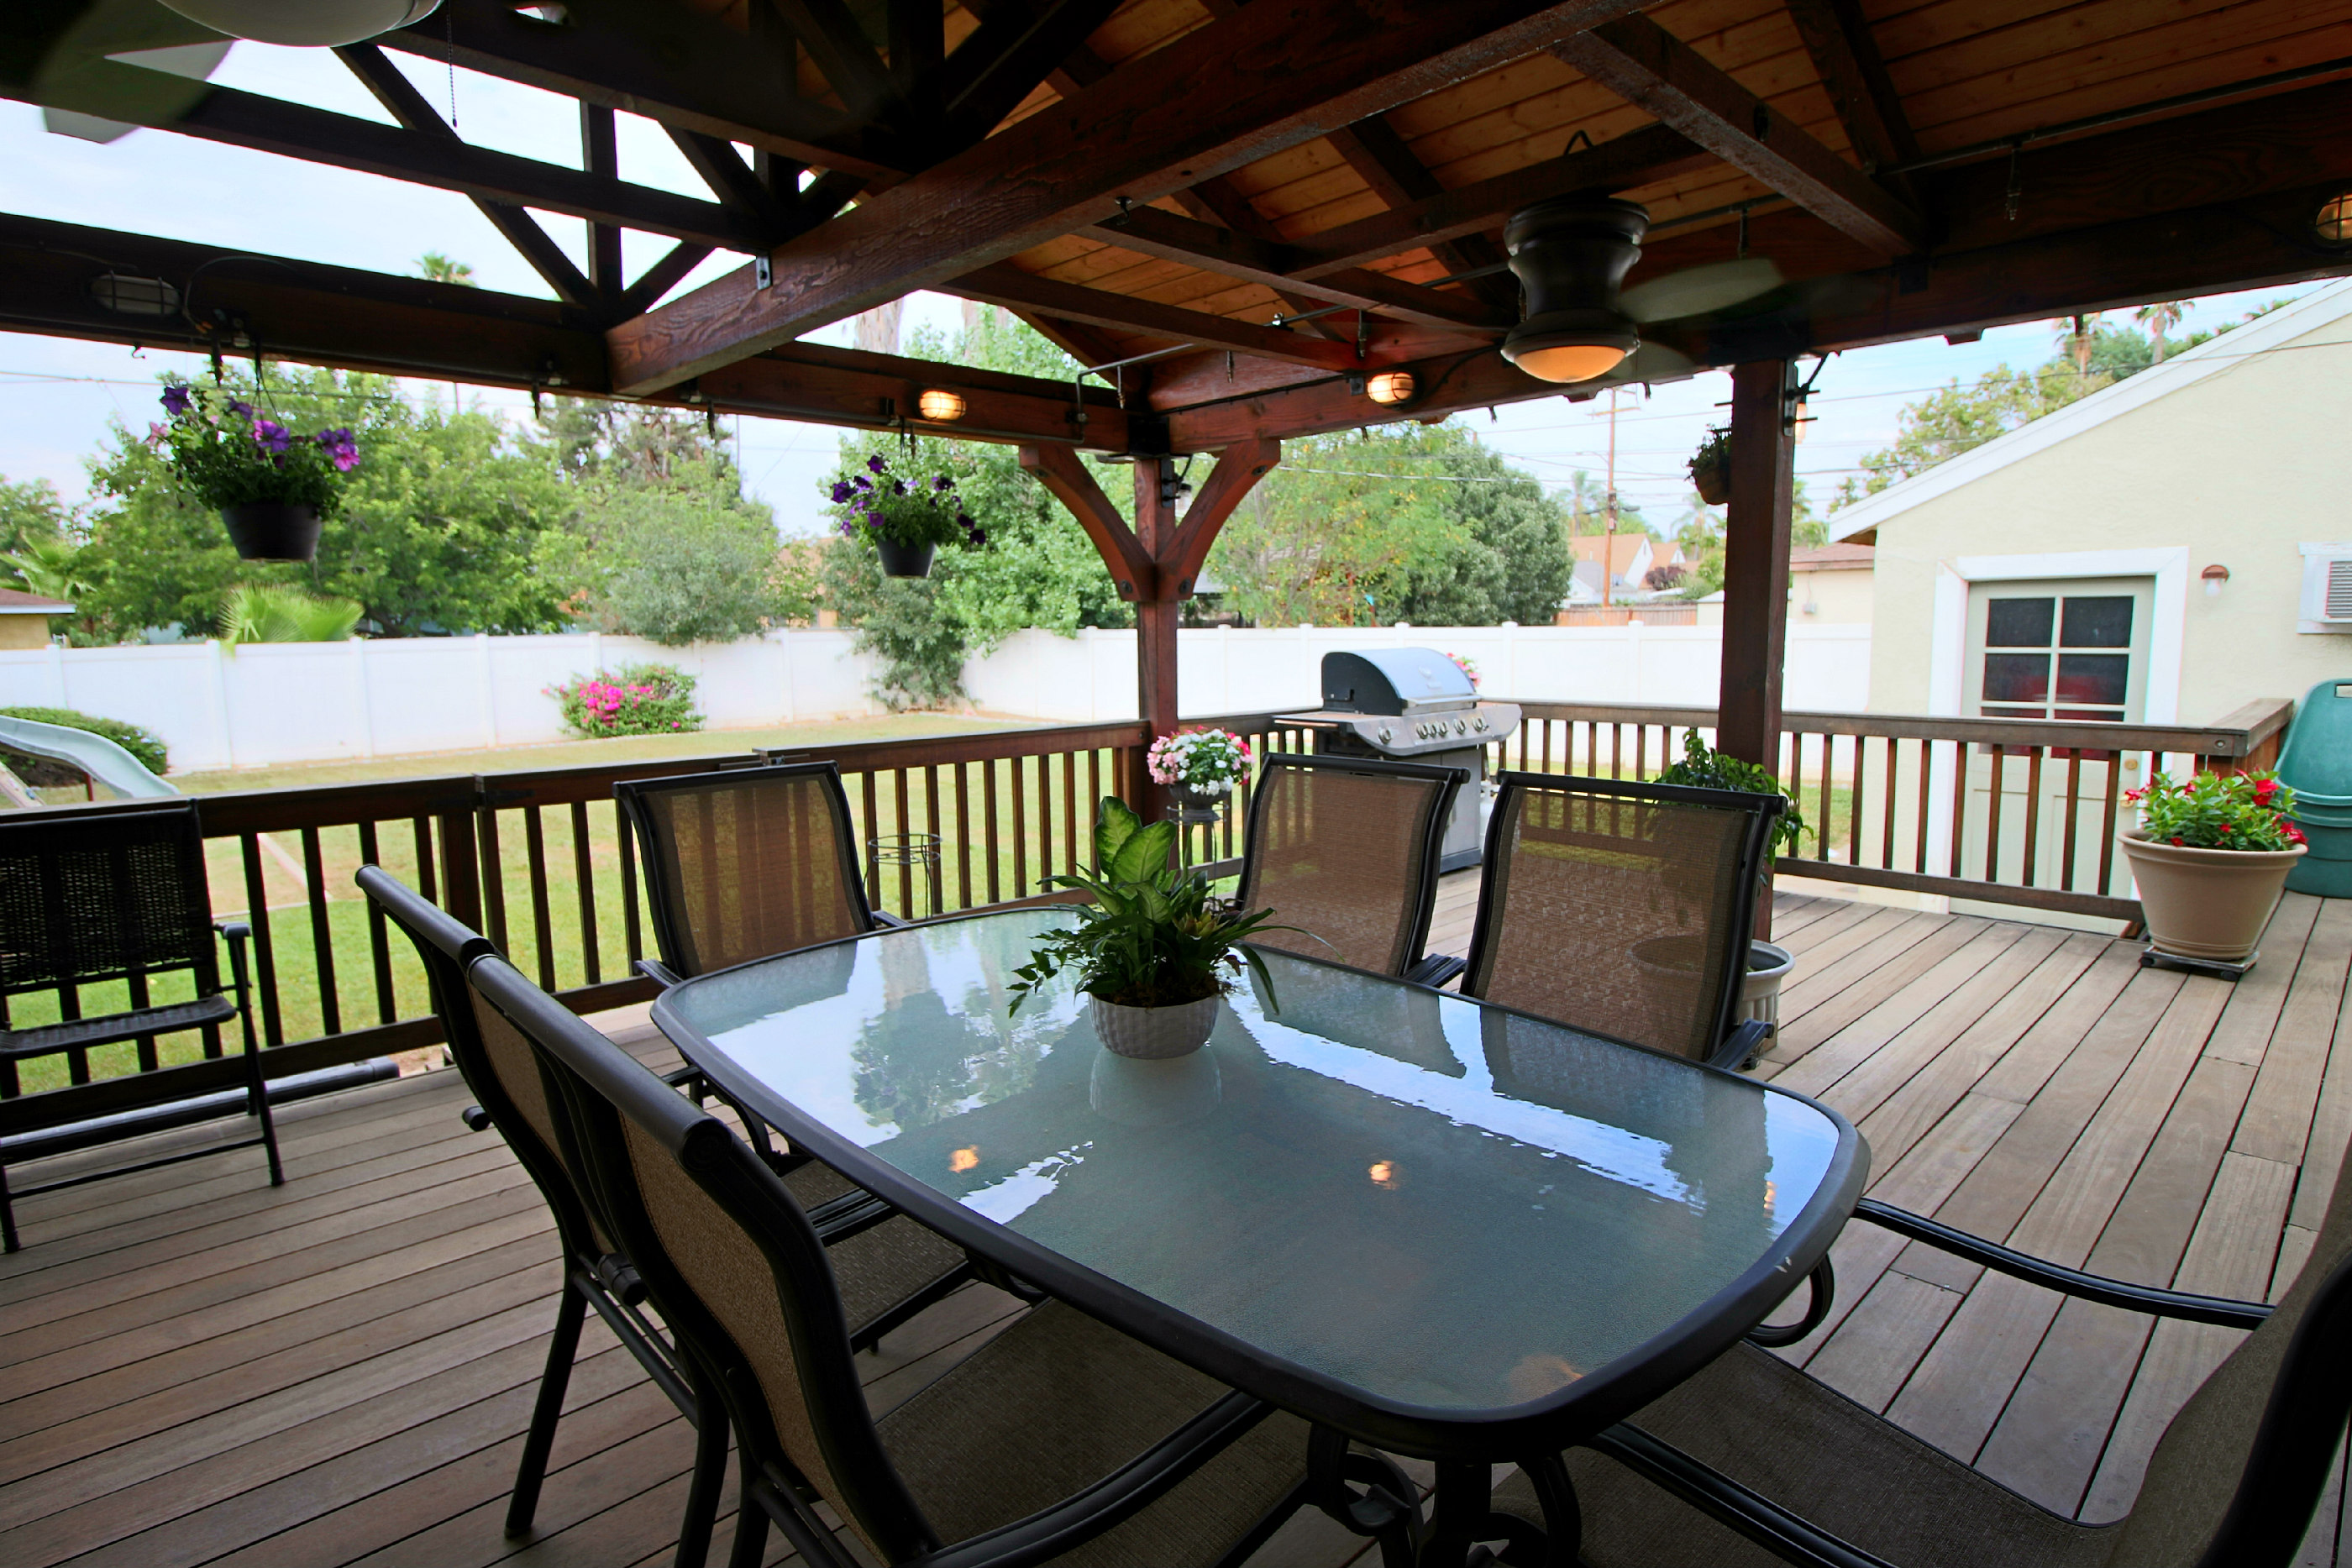 400 sq ft deck made of Mangaris, an exotic hardwood that is extremely high decay and rot resistance, with high durability.